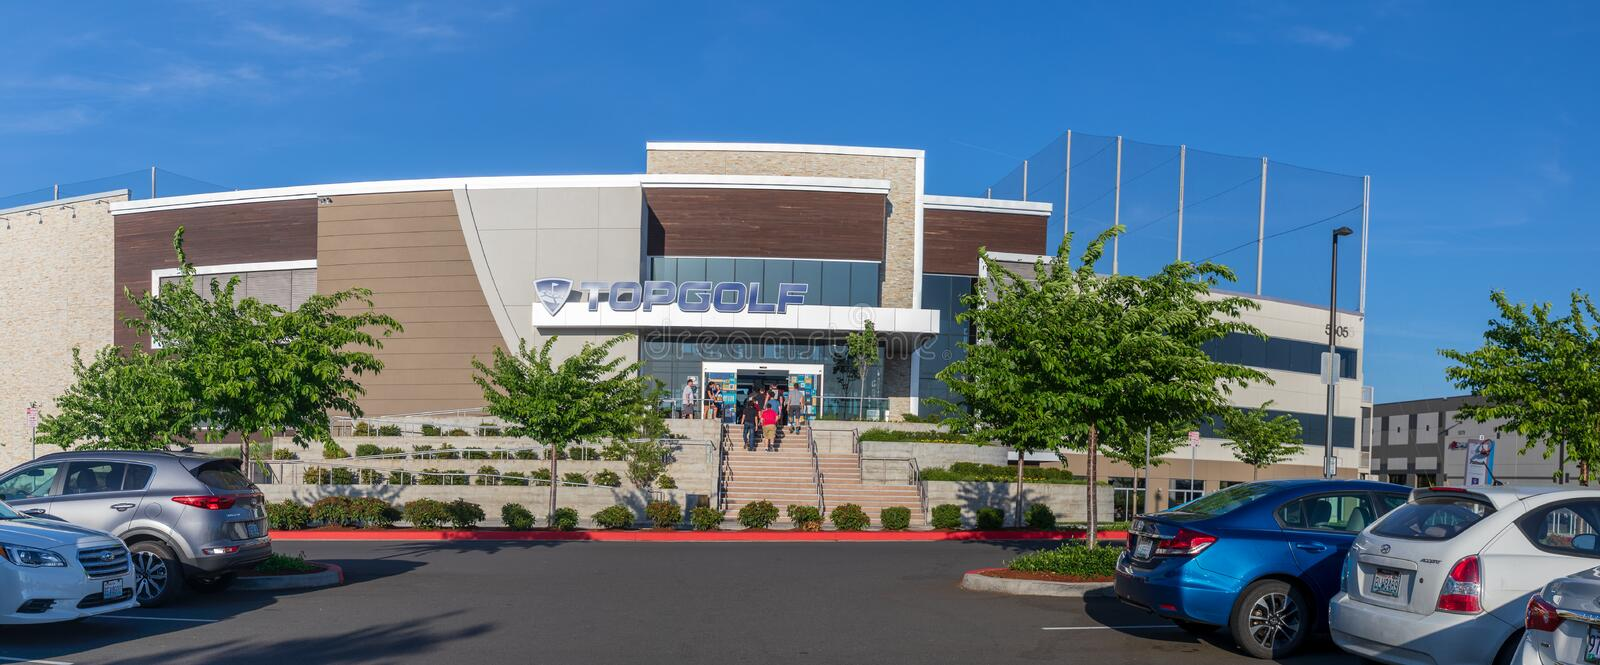 TopGolf, Entertainment venue with swanky lounge with drinks & games in Hillsboro, Oregon. Hillsboro, Oregon - May 11, 2019 : TopGolf, Entertainment venue with royalty free stock photo